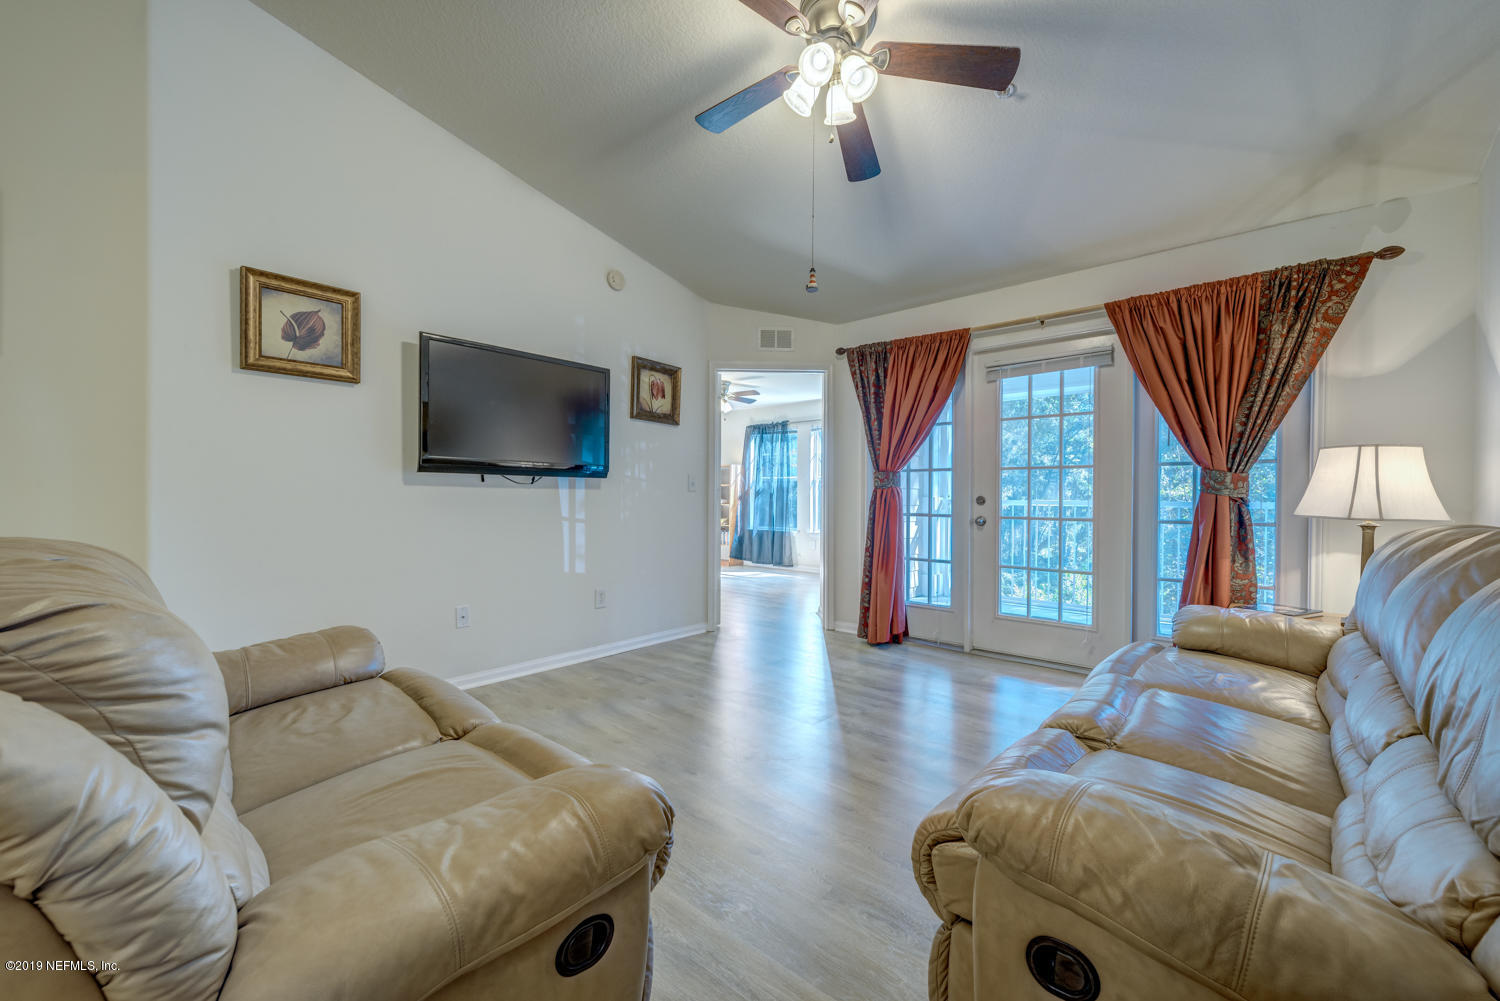 12171 BEACH, JACKSONVILLE, FLORIDA 32246, 2 Bedrooms Bedrooms, ,2 BathroomsBathrooms,Condo,For sale,BEACH,1020771